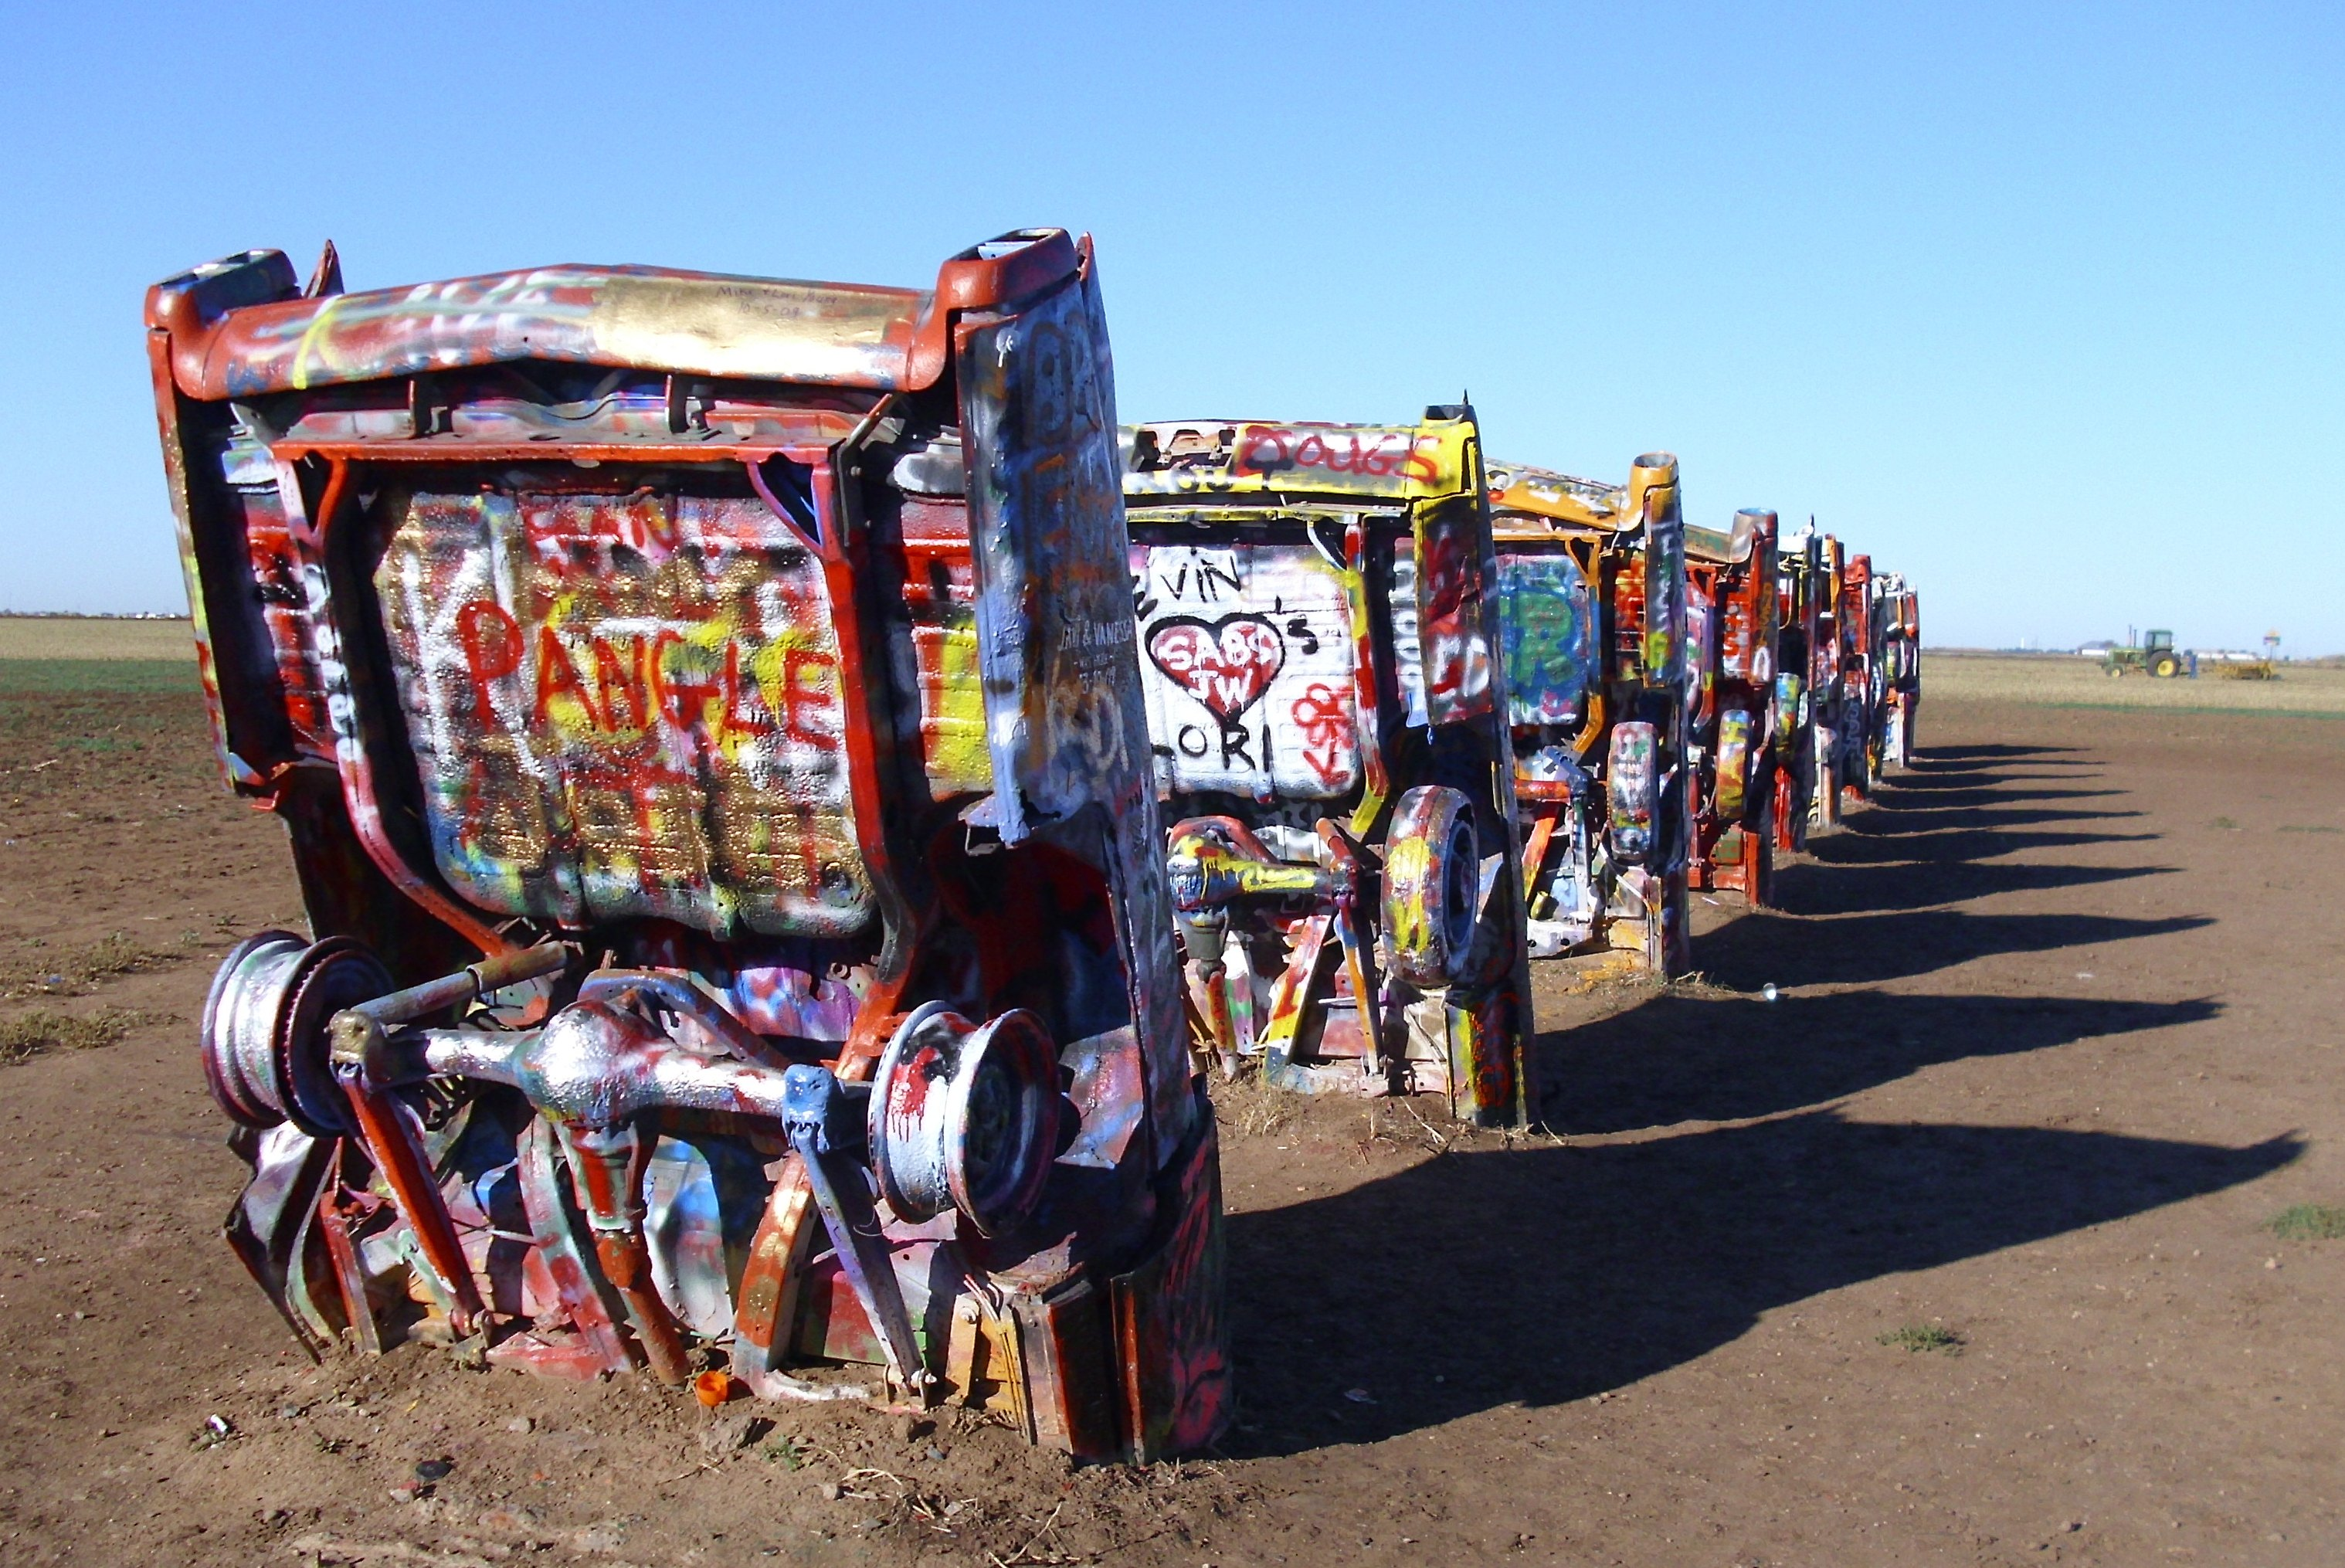 USA_Texas_Amarillo_Cadillac_Ranch_Side_0